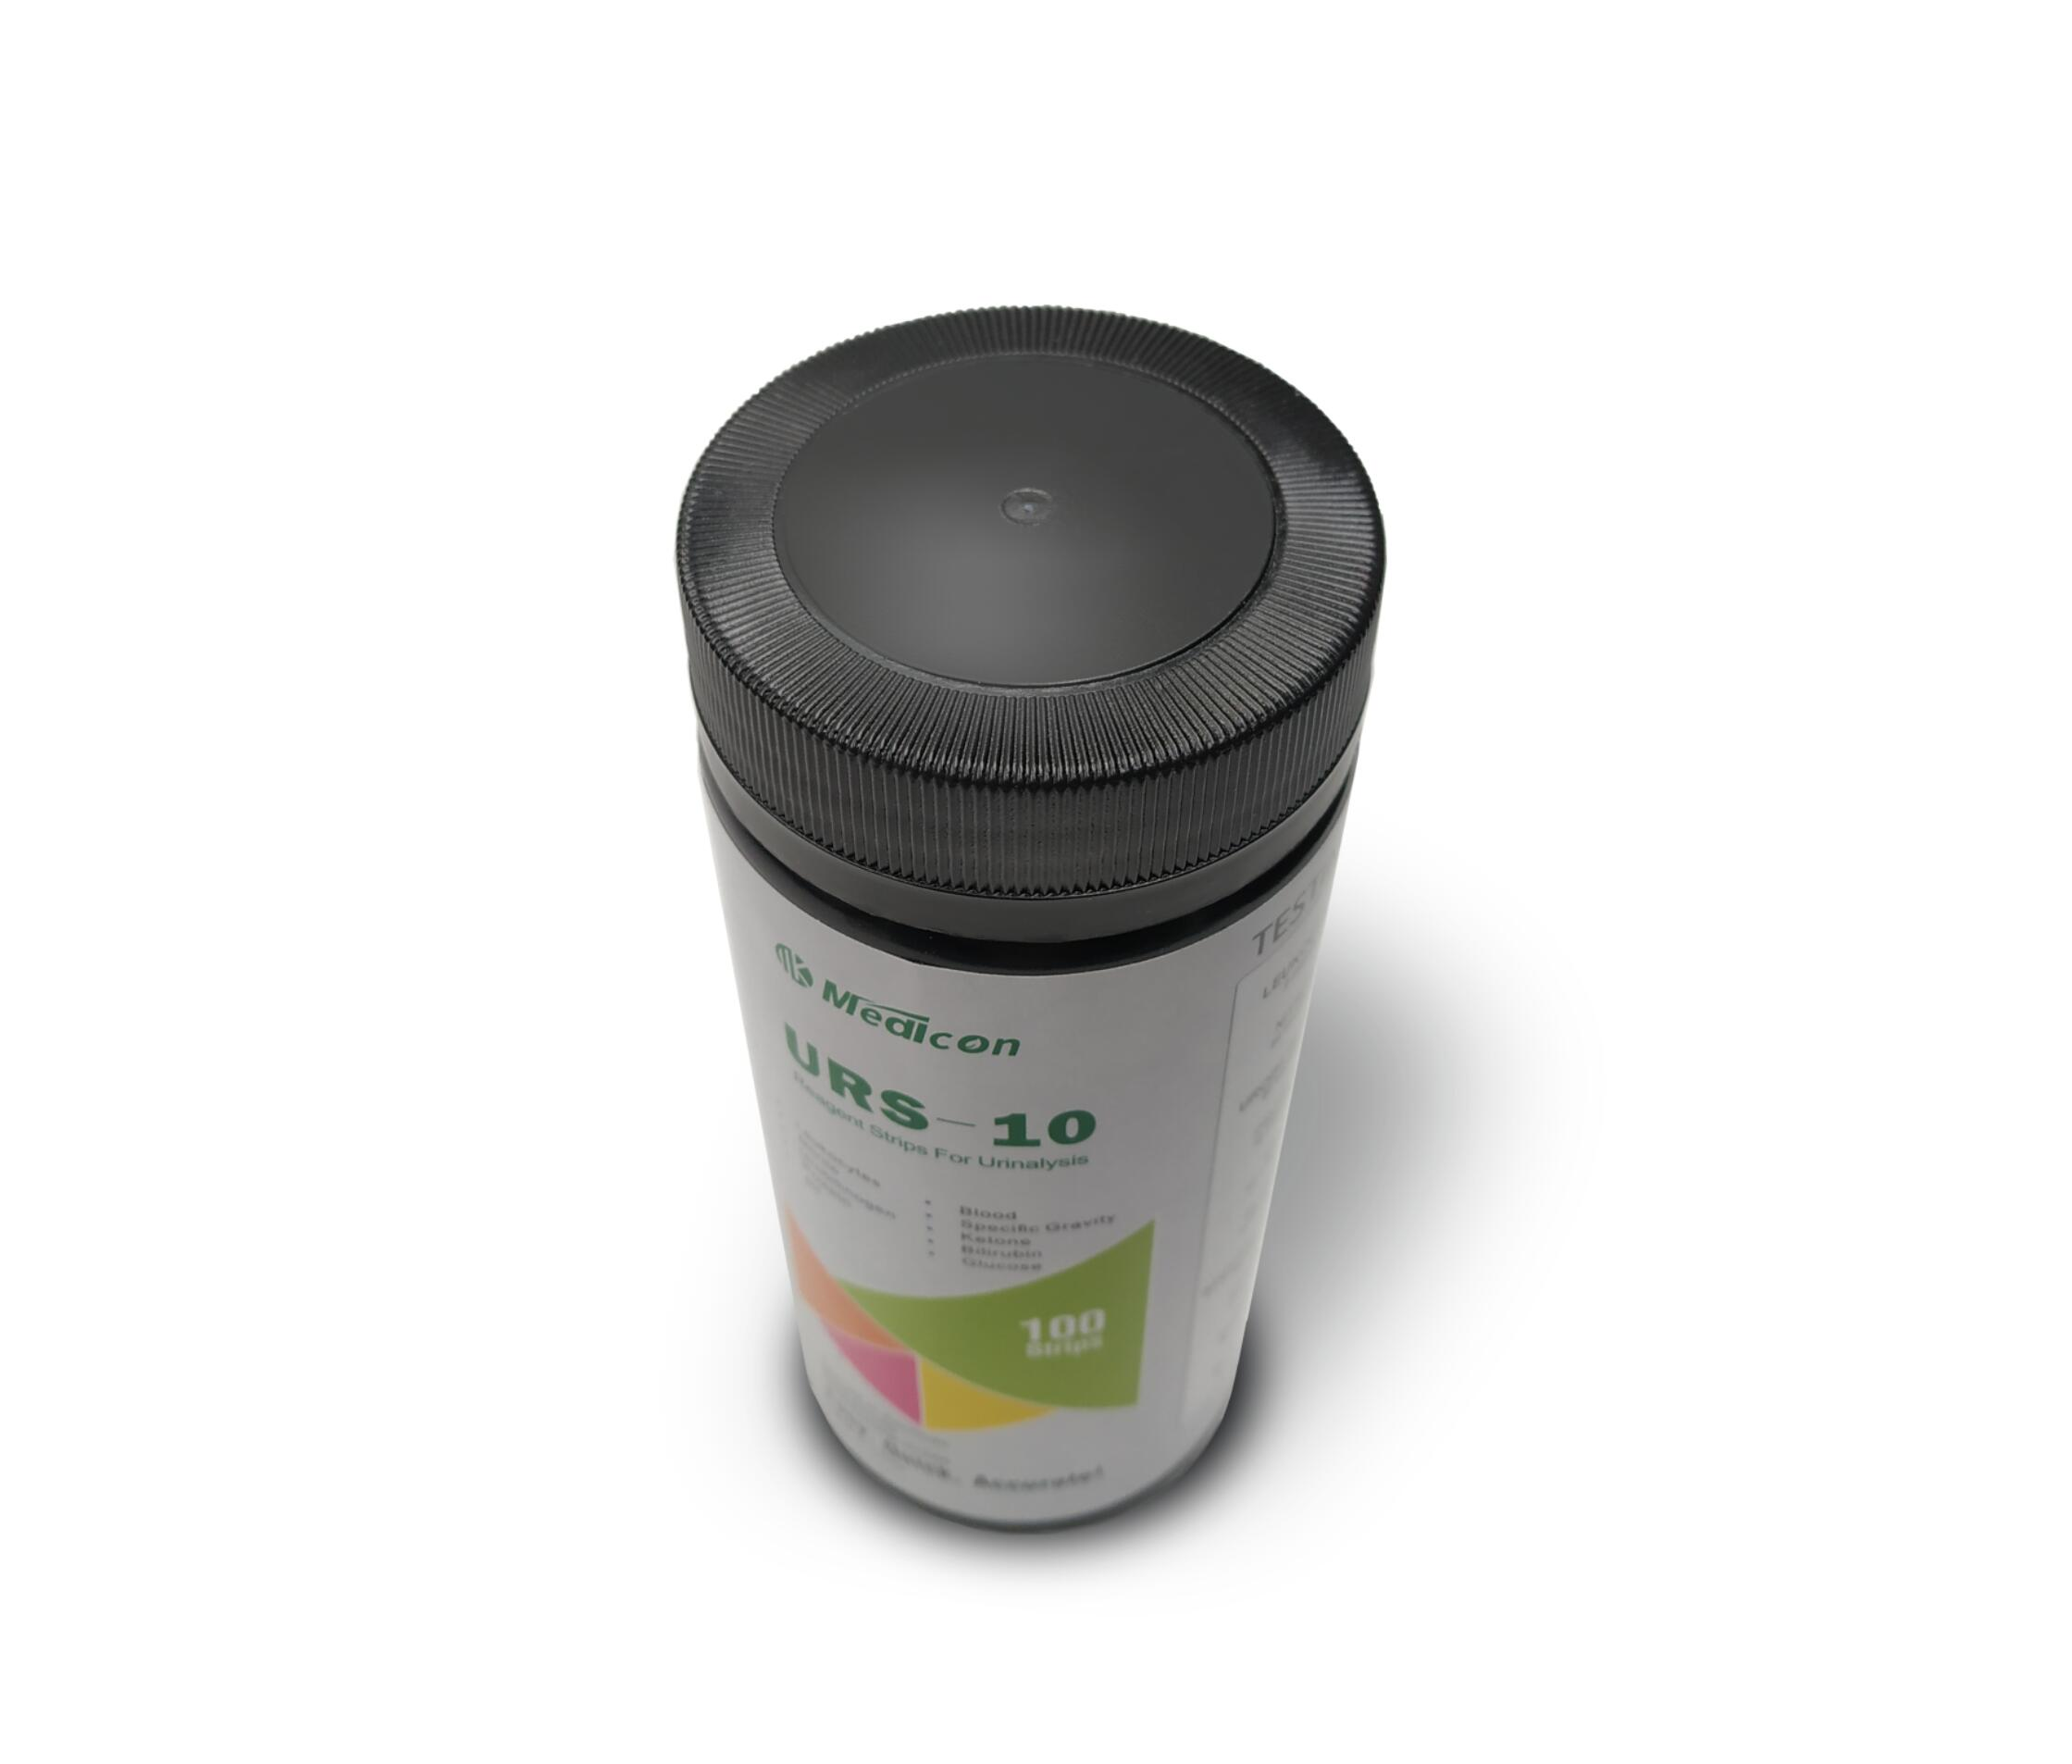 URS-10T Urine Test Strips for the Medical Professional`s